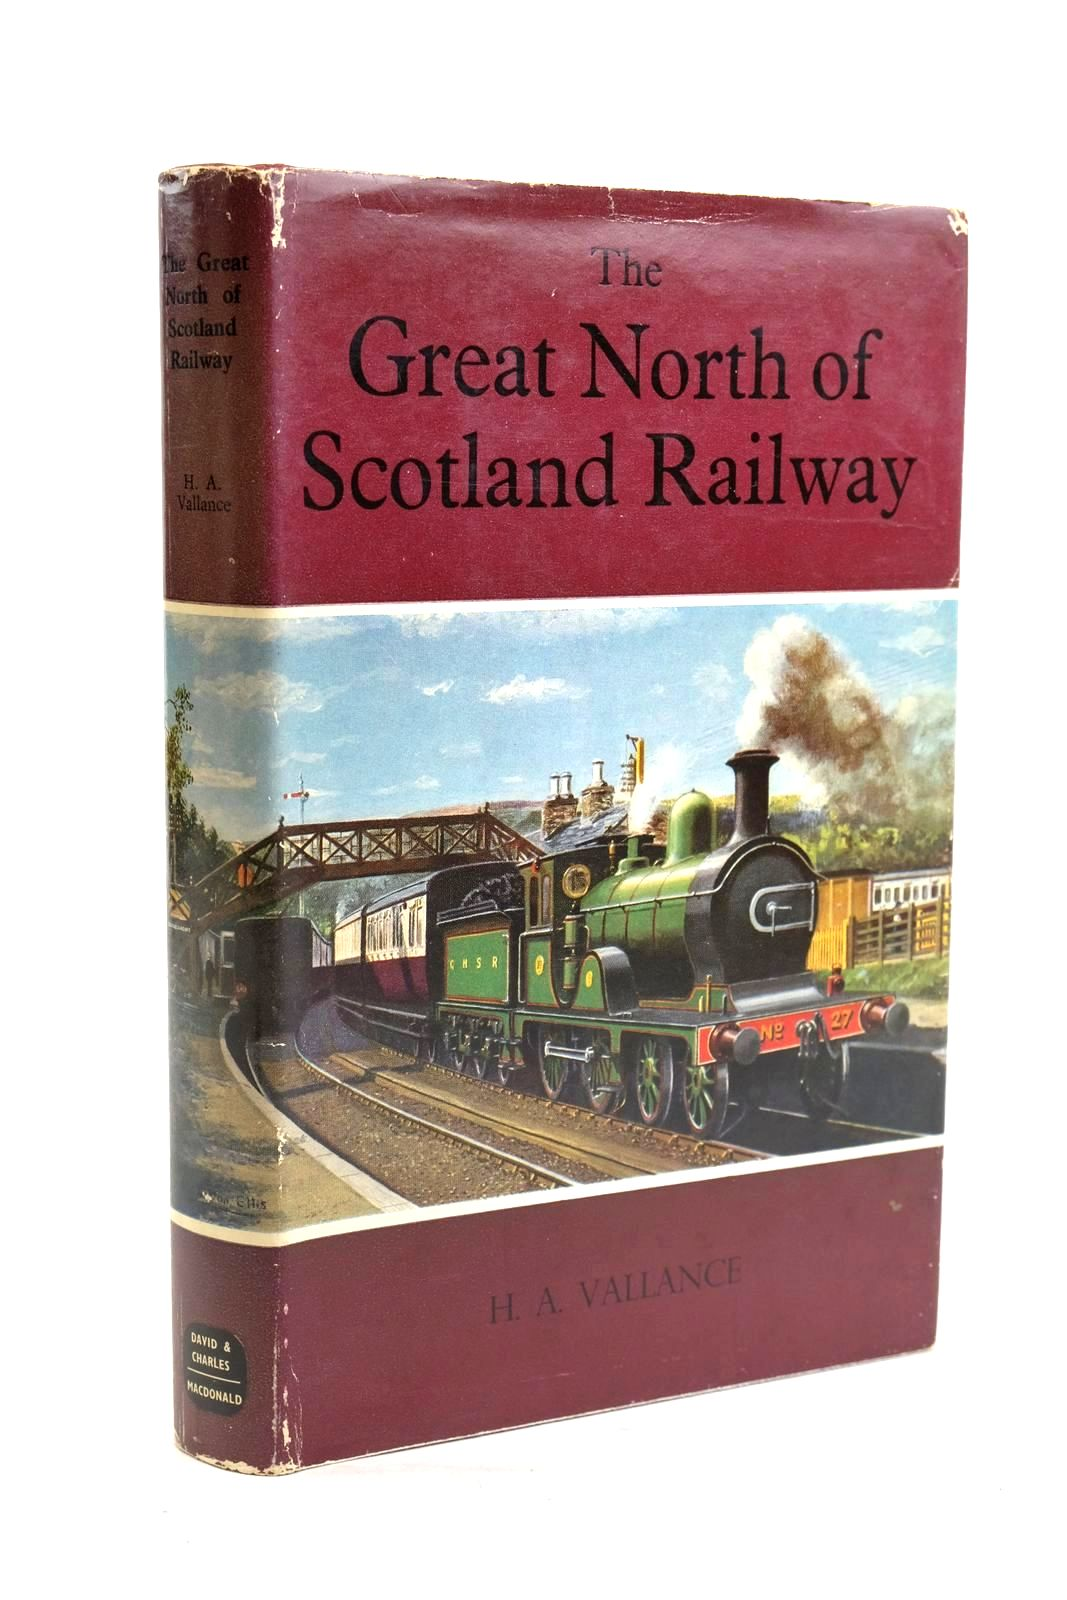 Photo of THE GREAT NORTH OF SCOTLAND RAILWAY written by Vallance, H.A. published by David & Charles, MacDonald (STOCK CODE: 1319921)  for sale by Stella & Rose's Books